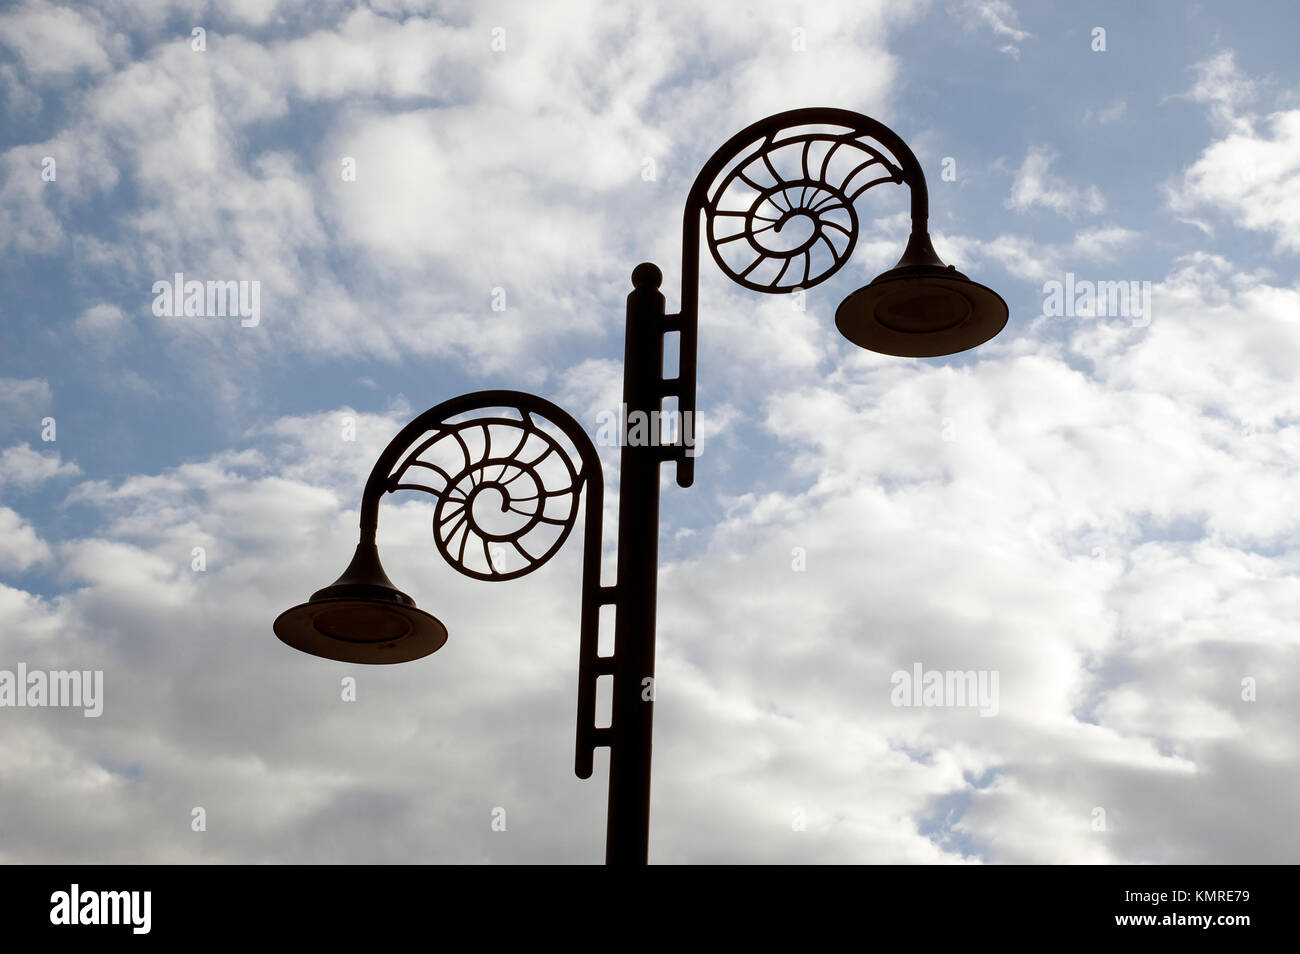 Decorative street lamps in the shape of ammonite fossils, on the Jurassic Coast at Lyme Regis, Dorset. - Stock Image